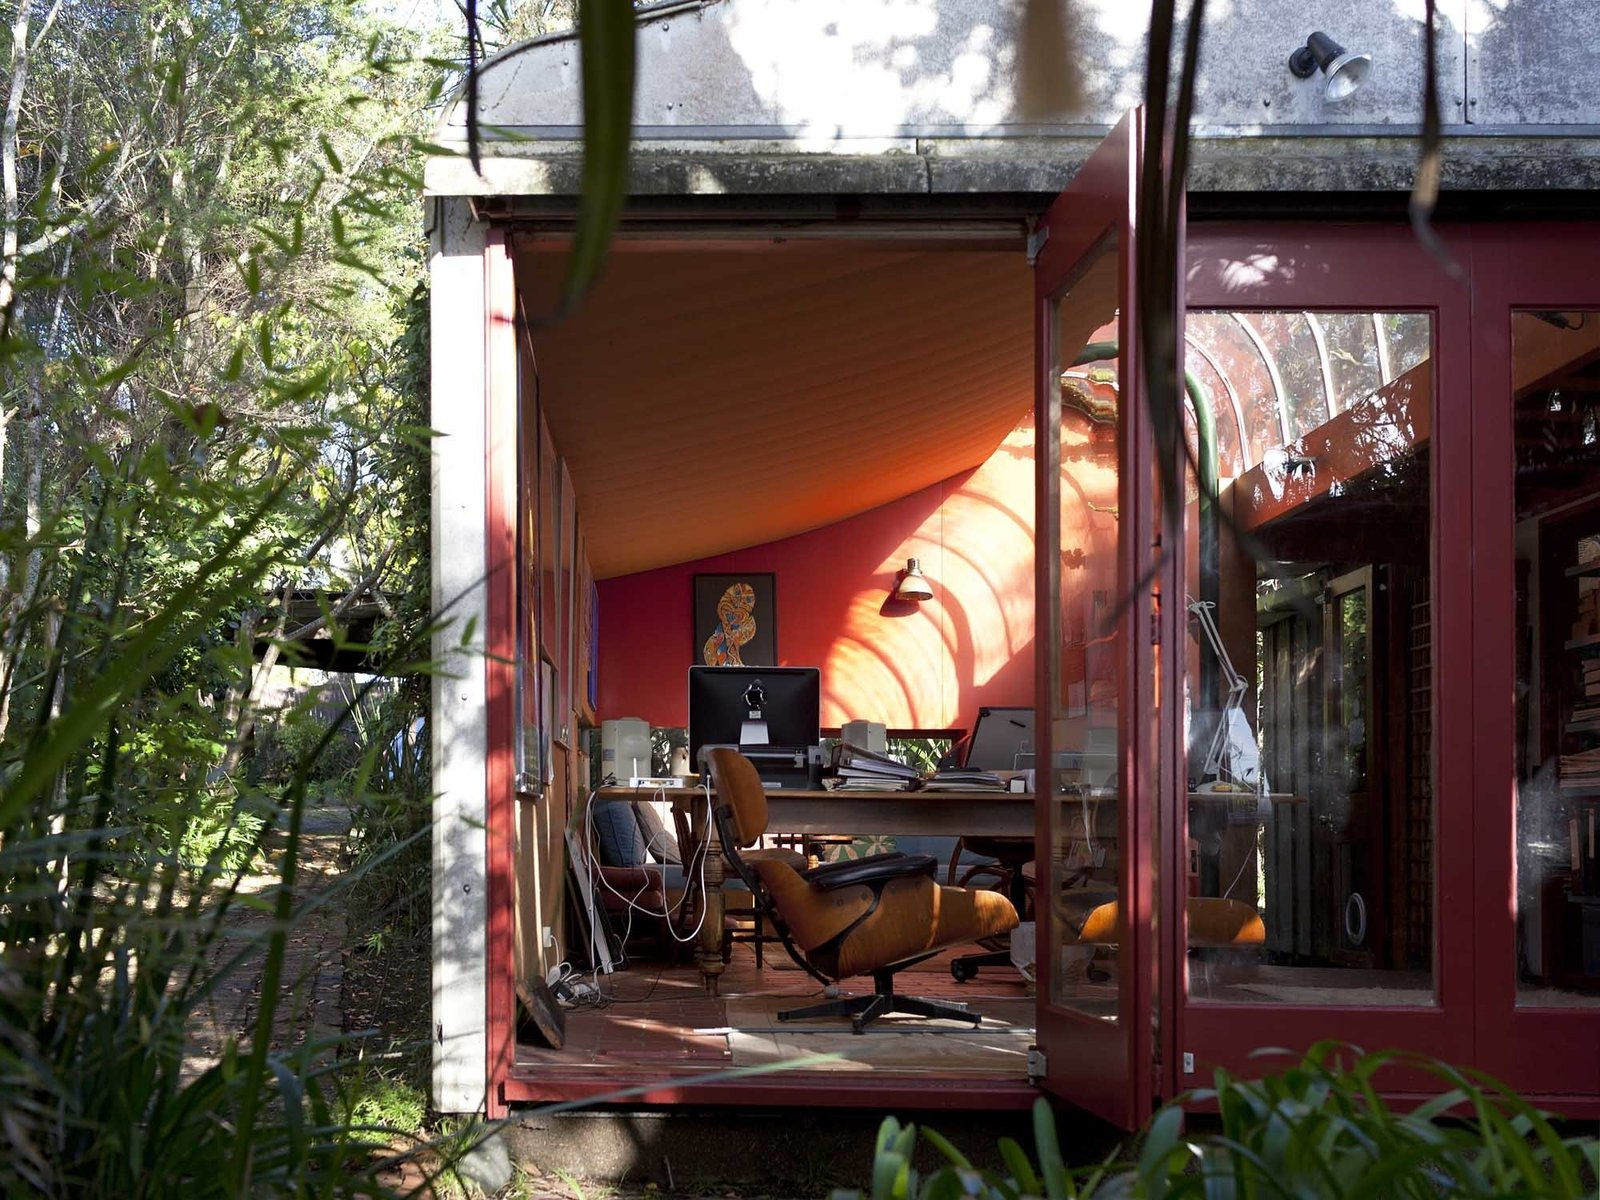 Office, Terra-cotta Tile Floor, Study Room Type, Desk, Lamps, and Chair Manning House by Jack Manning (1960)  Decades Old, the Modernist Houses of New Zealand Have No Shortage of Charm by Allie Weiss